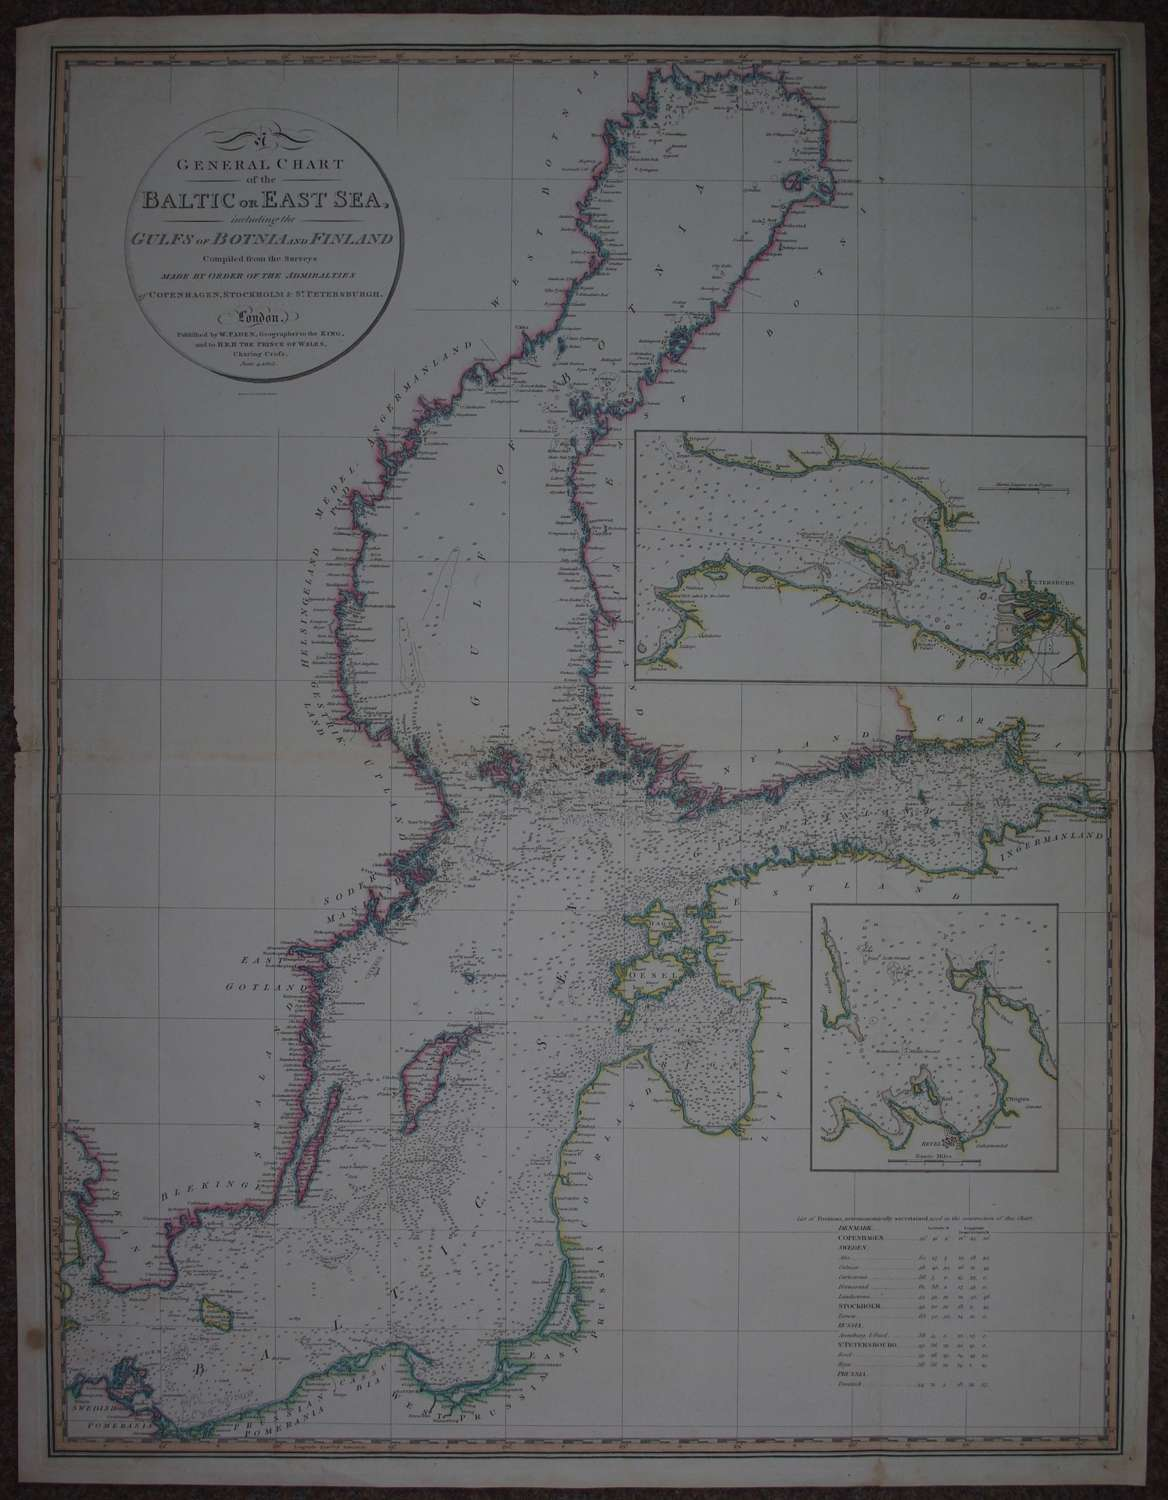 A General Chart of the Baltic or East Sea  by William Faden